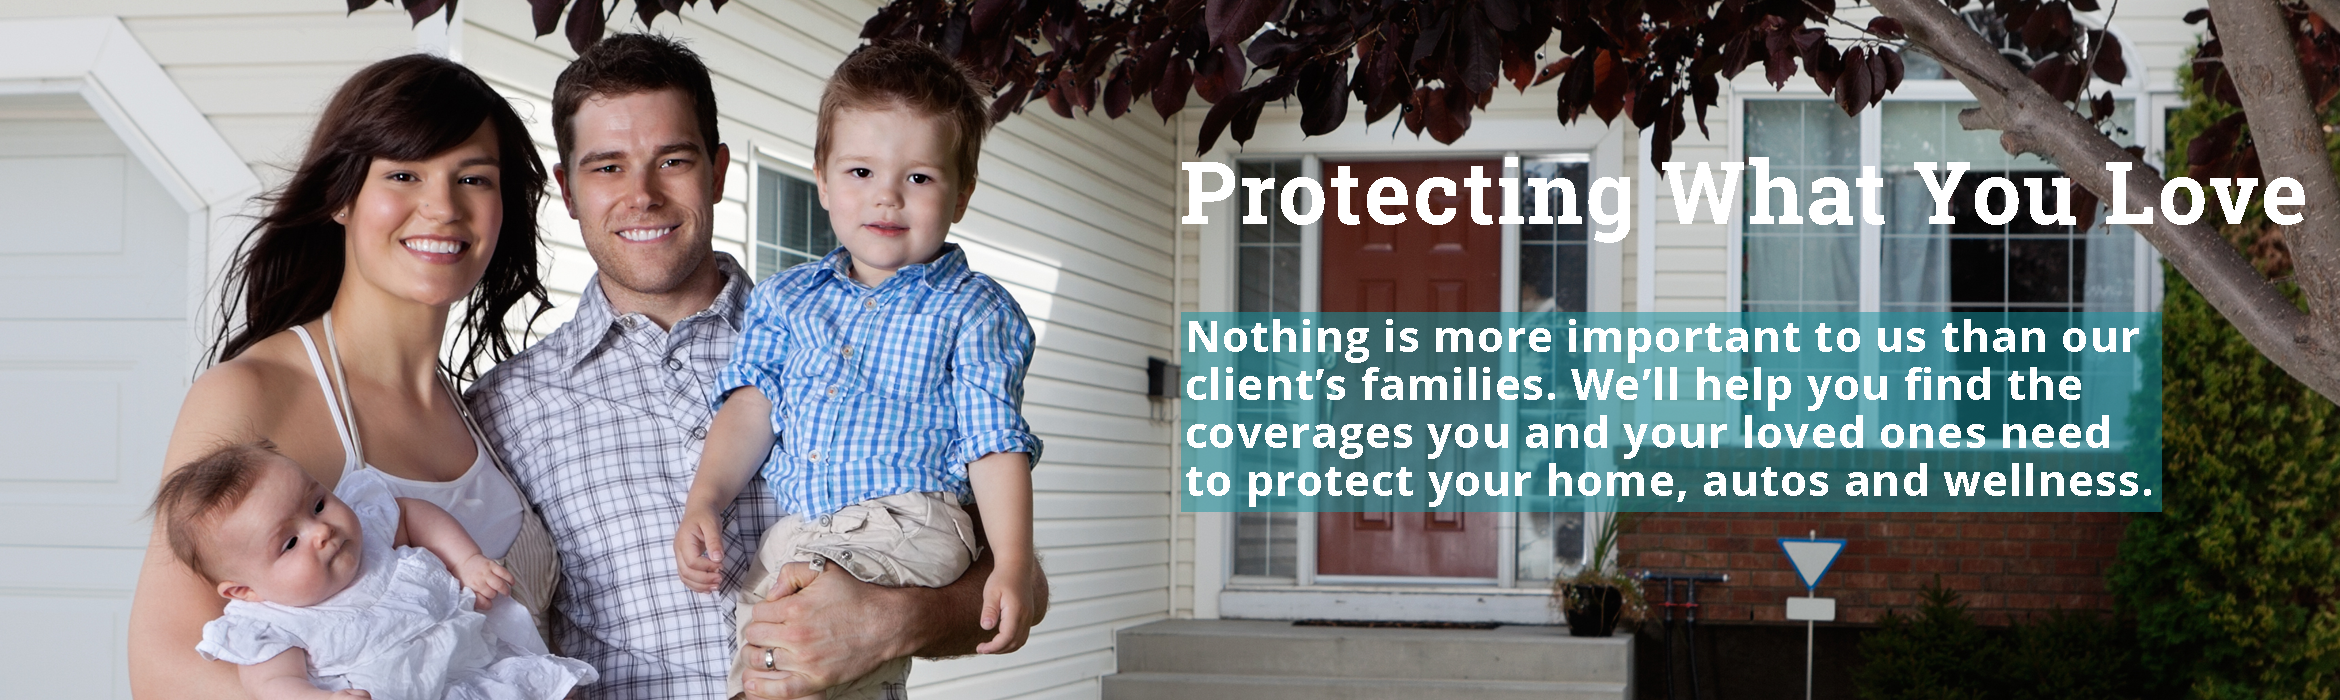 personal insurance protecting what you love